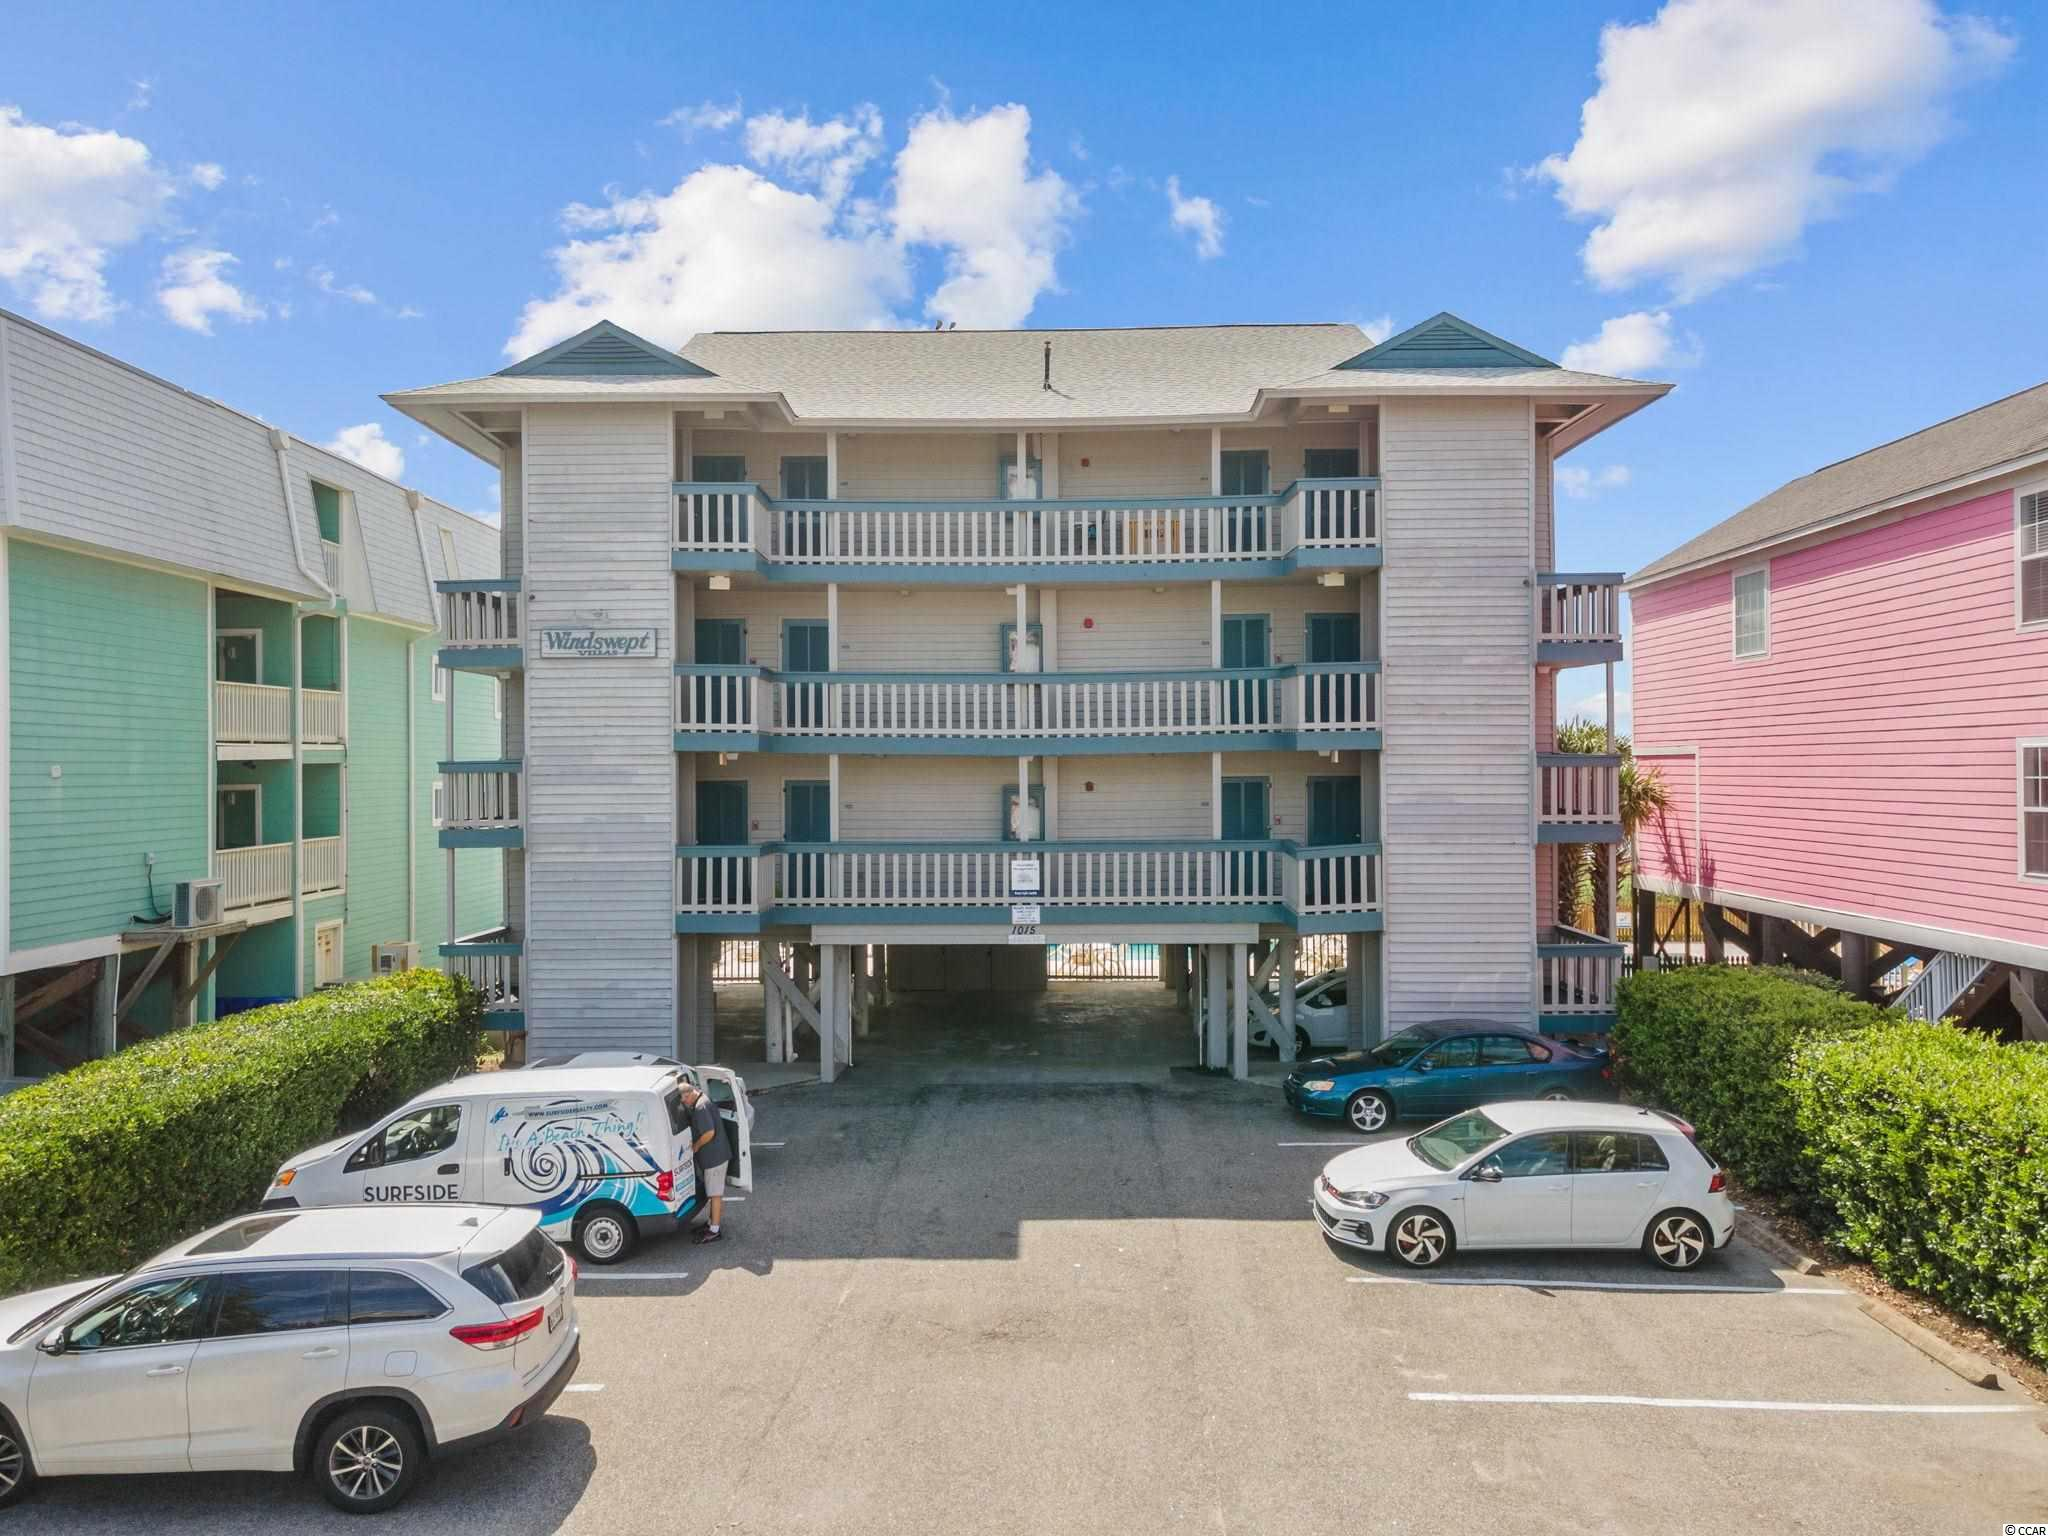 Adorable fully furnished oceanfront efficiency in Surfside Beach.  This top floor end unit is a gem.  The ONLY condo currently available.  Totally updated with STRONG rental history.  Don't miss this opportunity - Condos in Windswept are rarely available. This small 12 unit low-rise buildings has one of the largest pools on the oceanfront..  Virtual and in person tours available on Saturdays.  Call now!